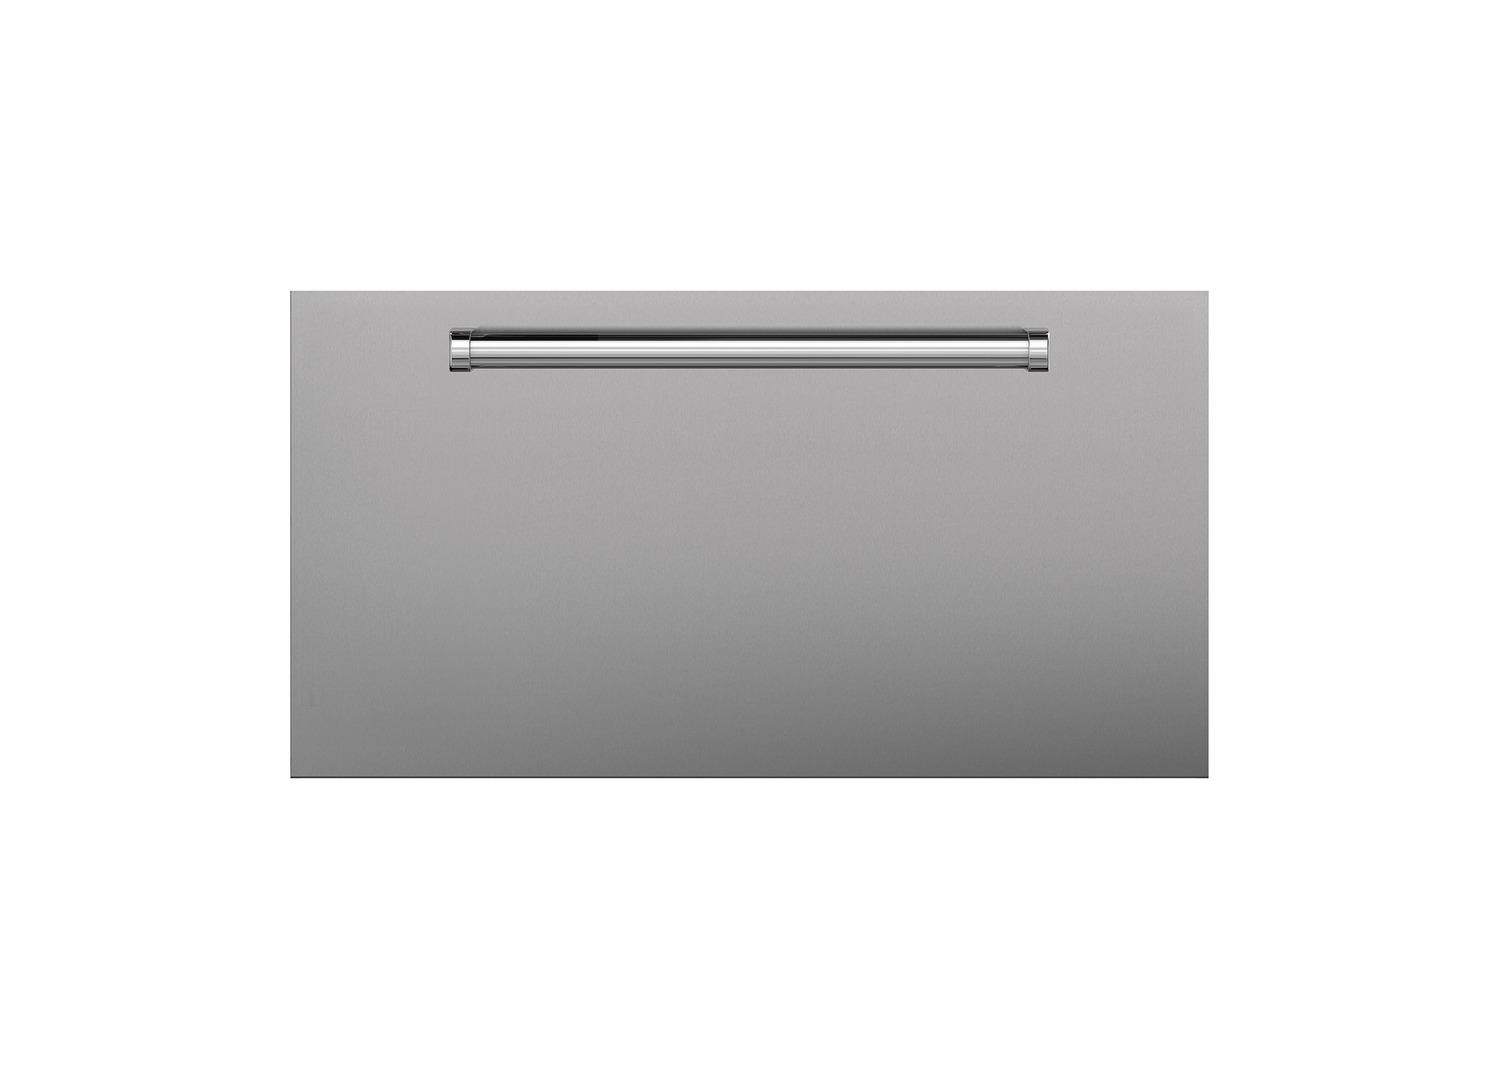 SubzeroStainless Steel Dual Flush Inset Drawer Panel With Pro Handle - Rh